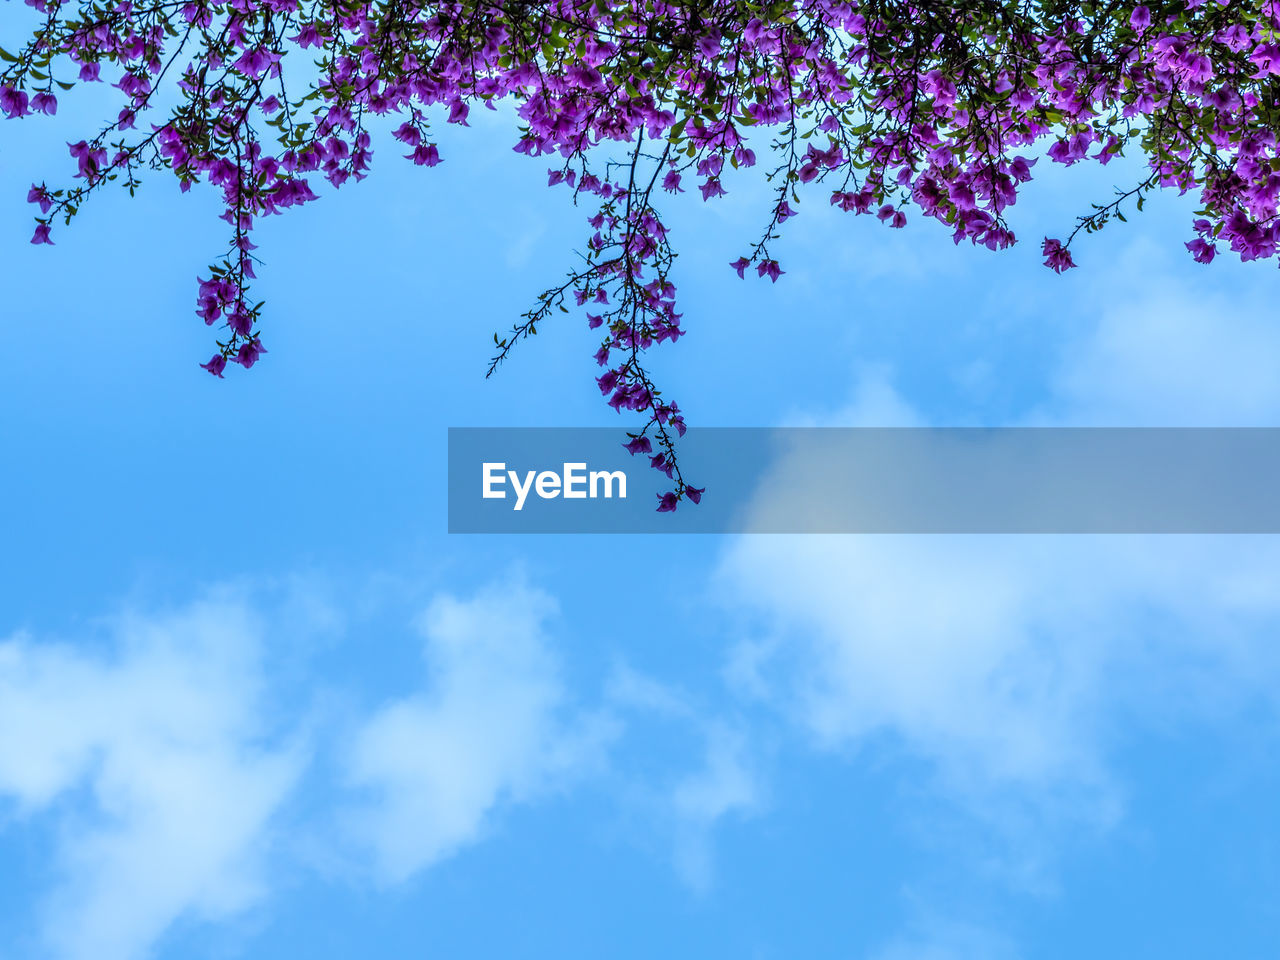 sky, cloud - sky, low angle view, beauty in nature, plant, nature, blue, growth, tranquility, day, no people, tree, branch, outdoors, flowering plant, flower, fragility, vulnerability, tranquil scene, scenics - nature, spring